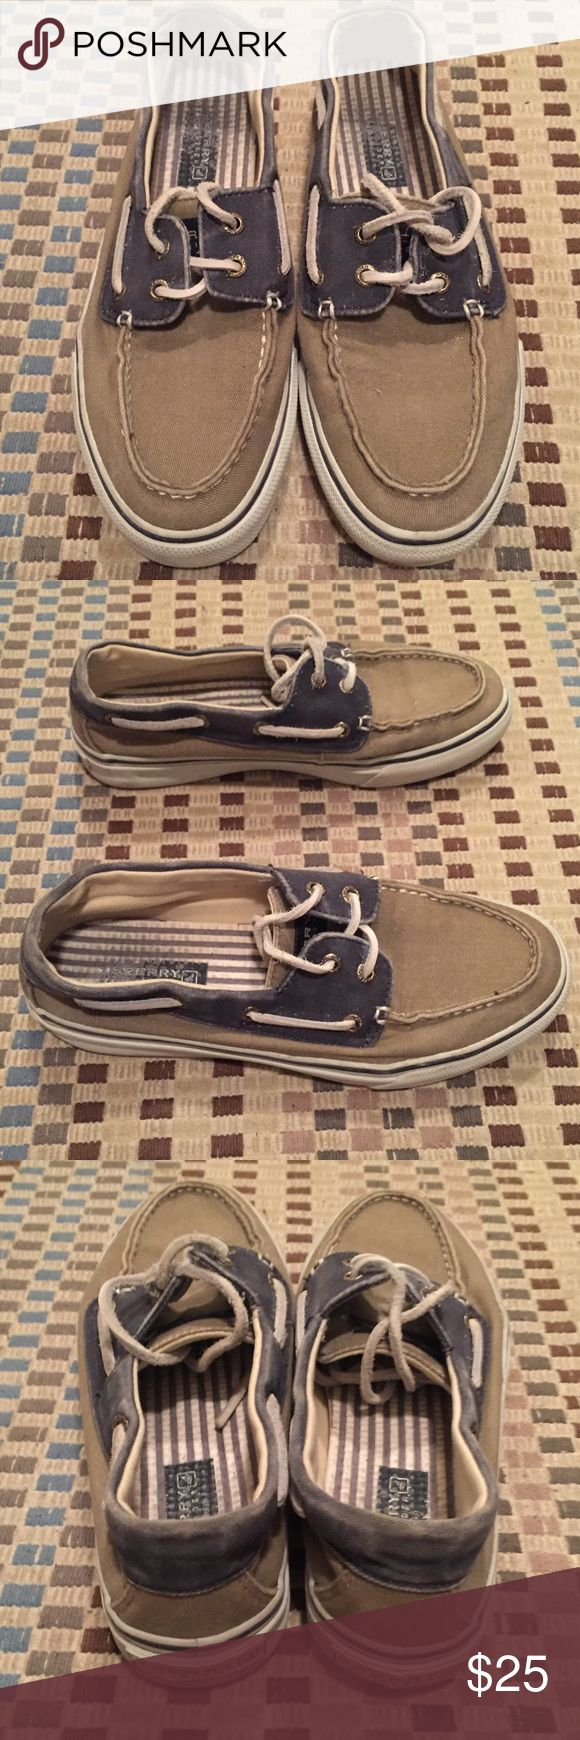 Sperry Boat Casual Shoes Men's Size 7.5 If you have any questions just comment! Sperry Shoes Boat Shoes